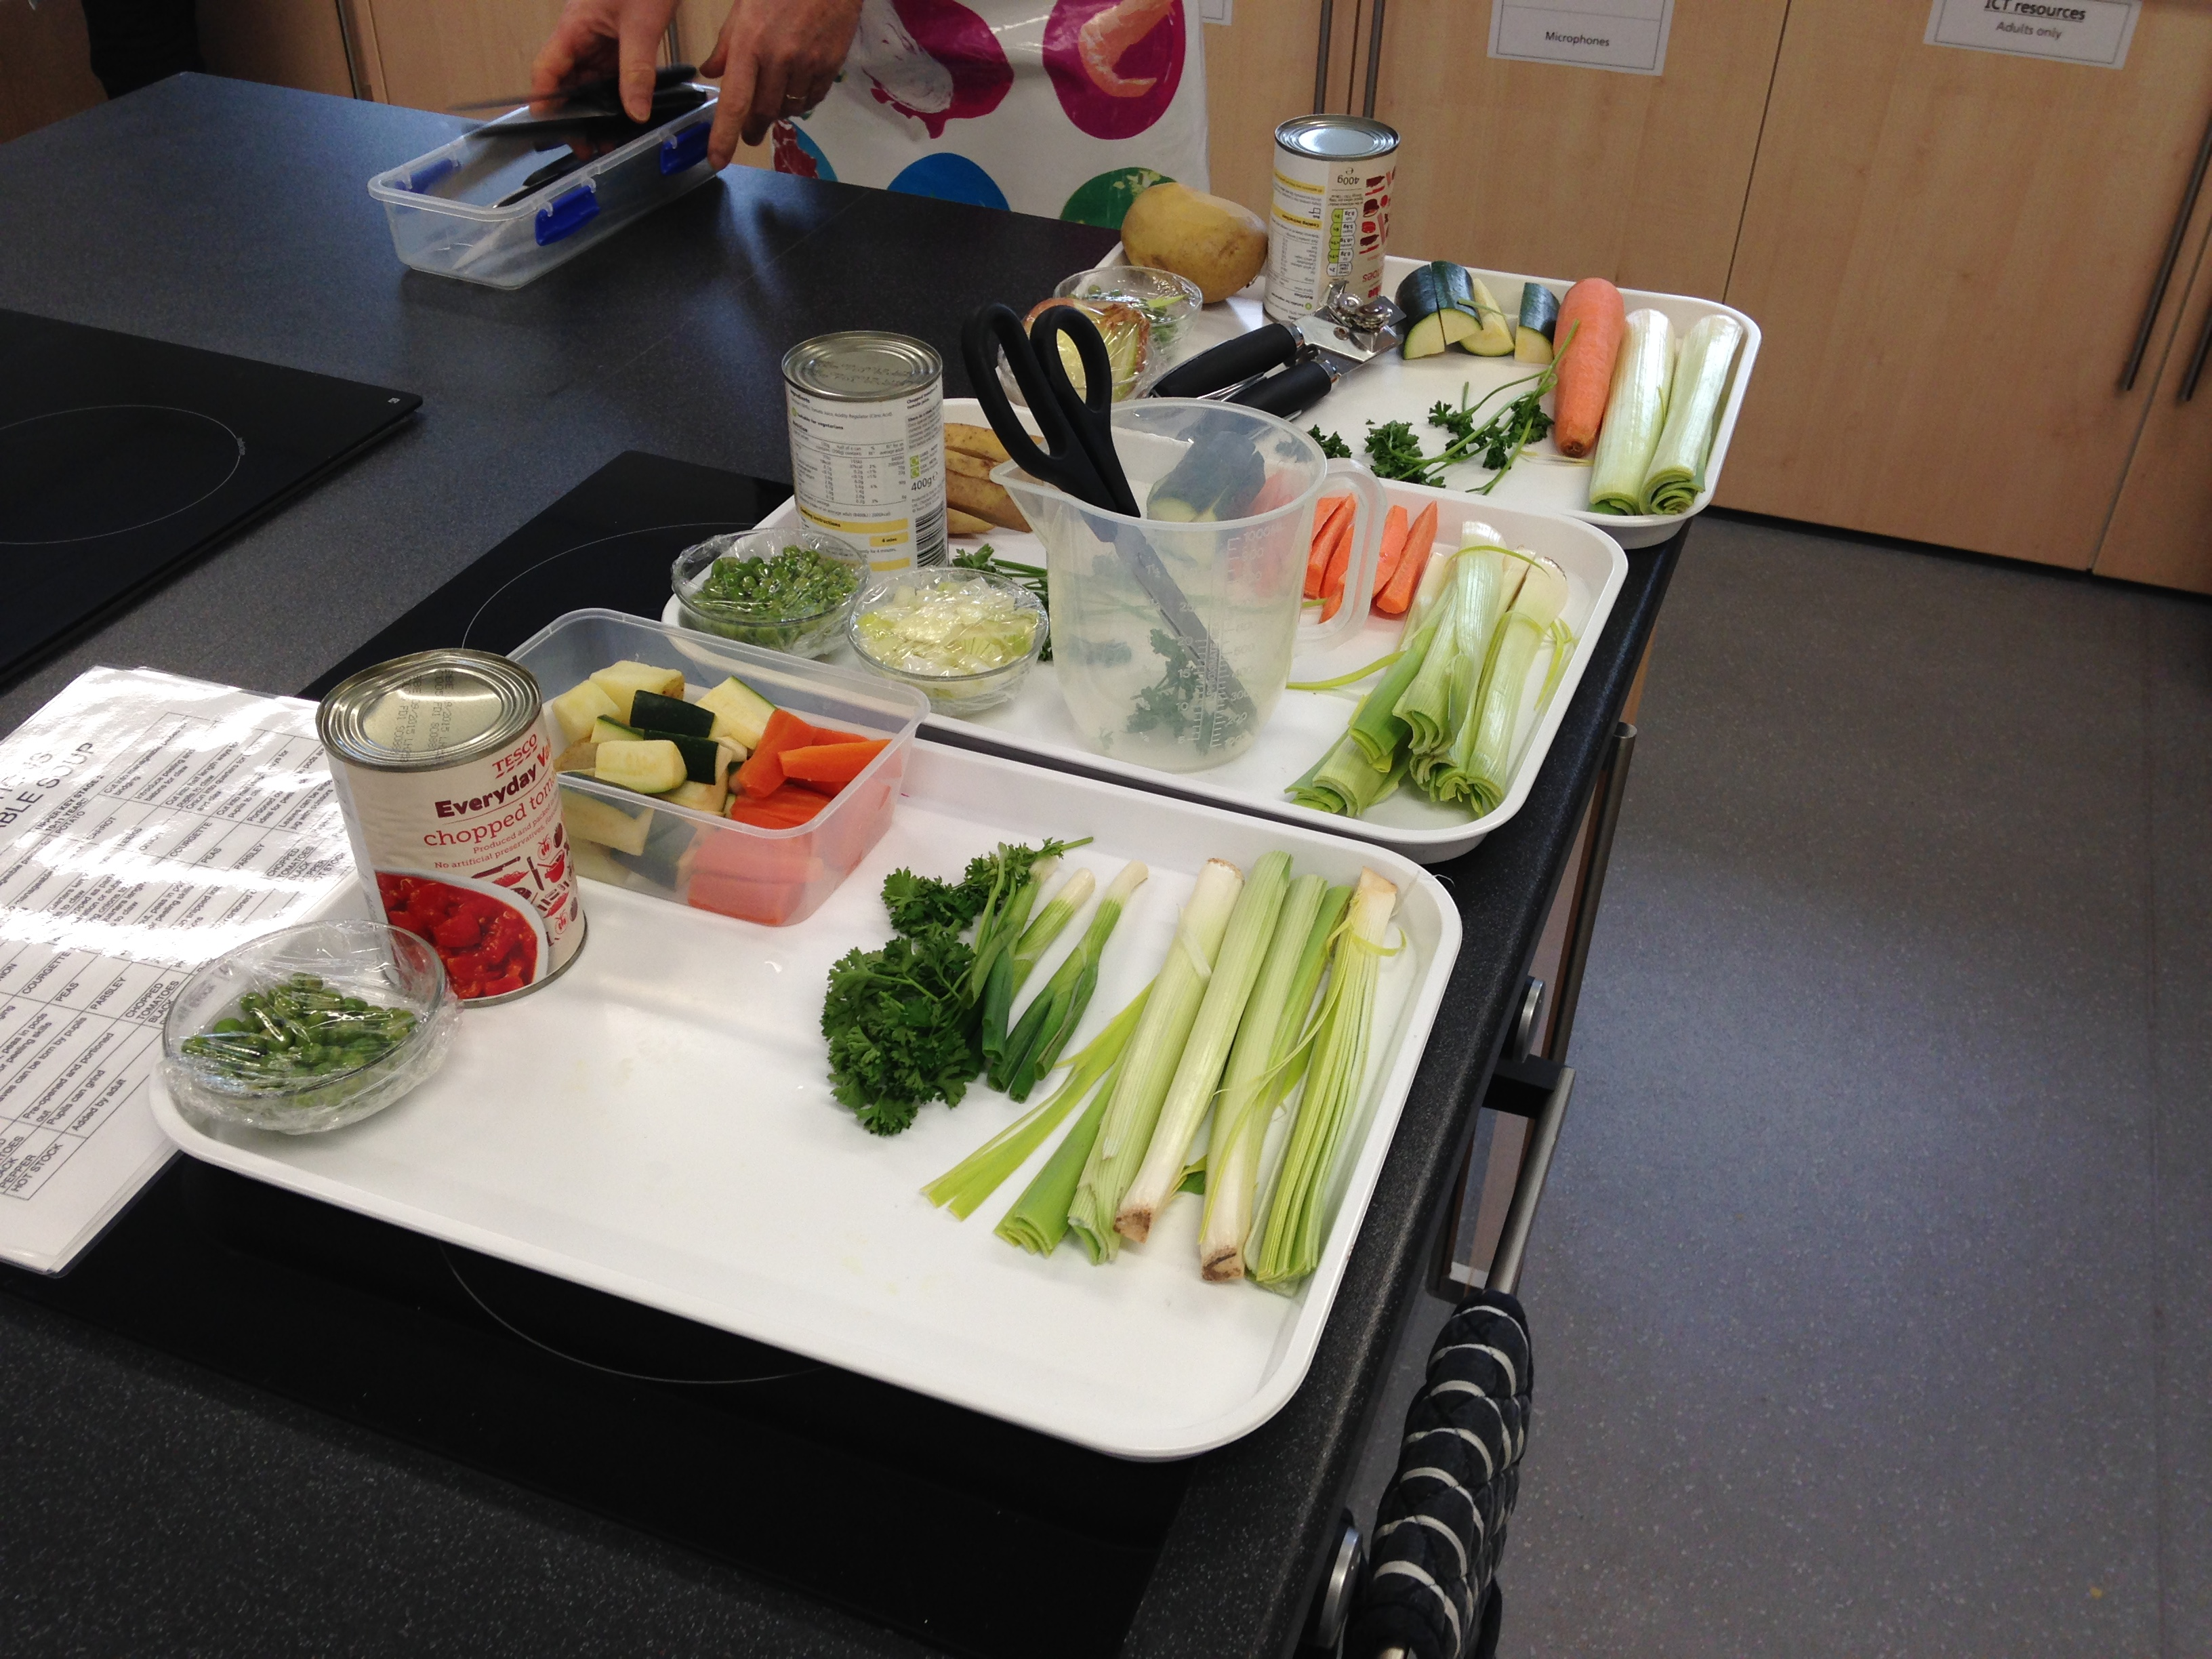 Food in Schools Resources